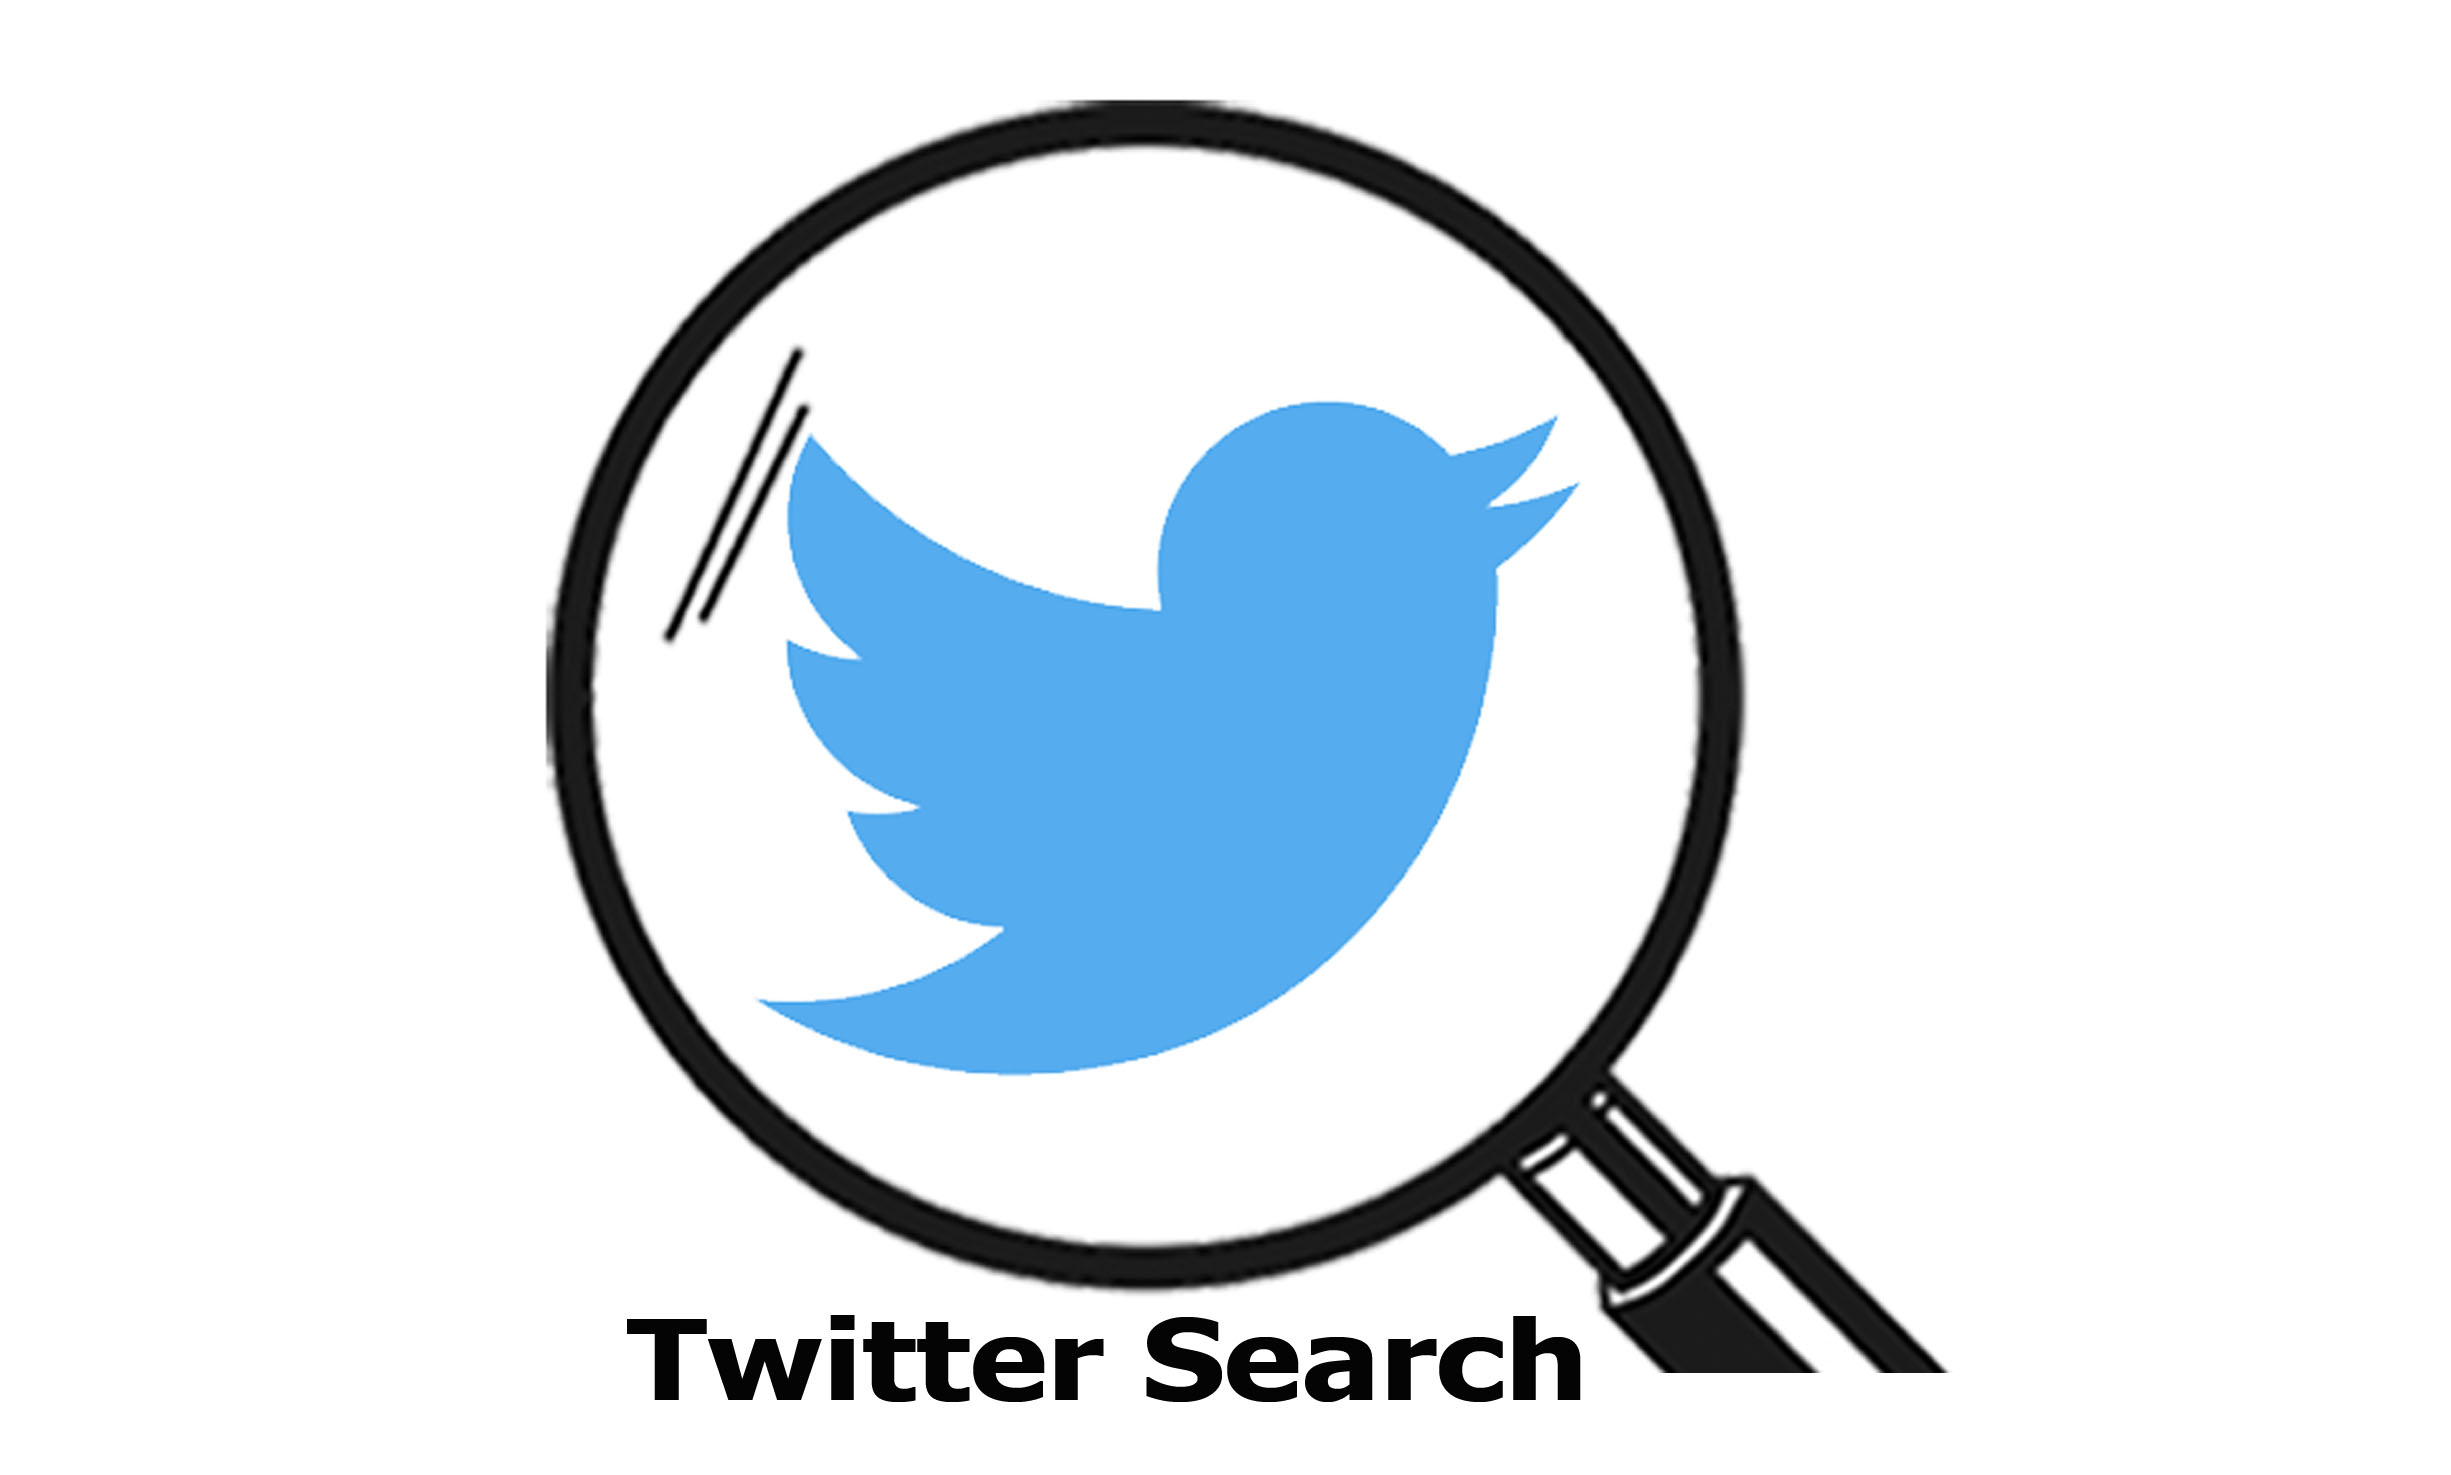 Twitter Search – Twitter Search History